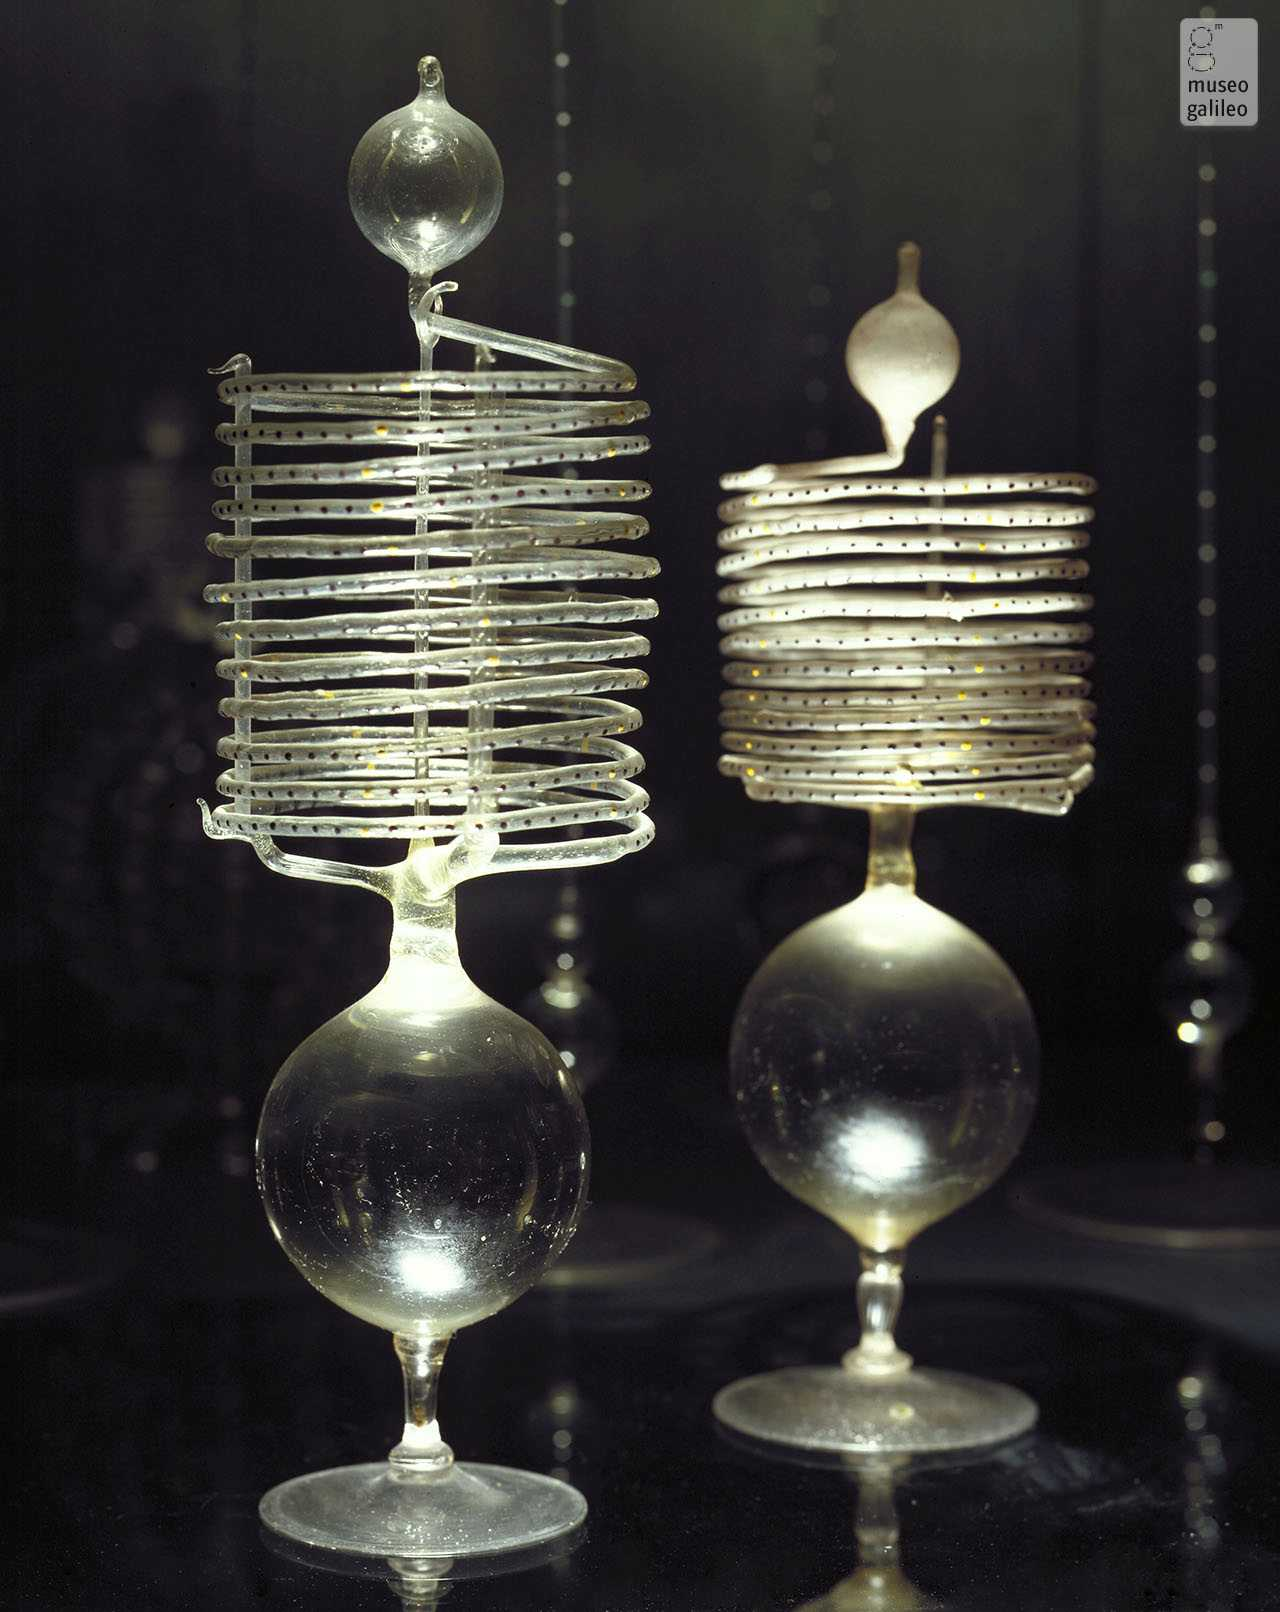 Spiral thermometers of the Accademia del Cimento held in the Museo Galileo in Florence